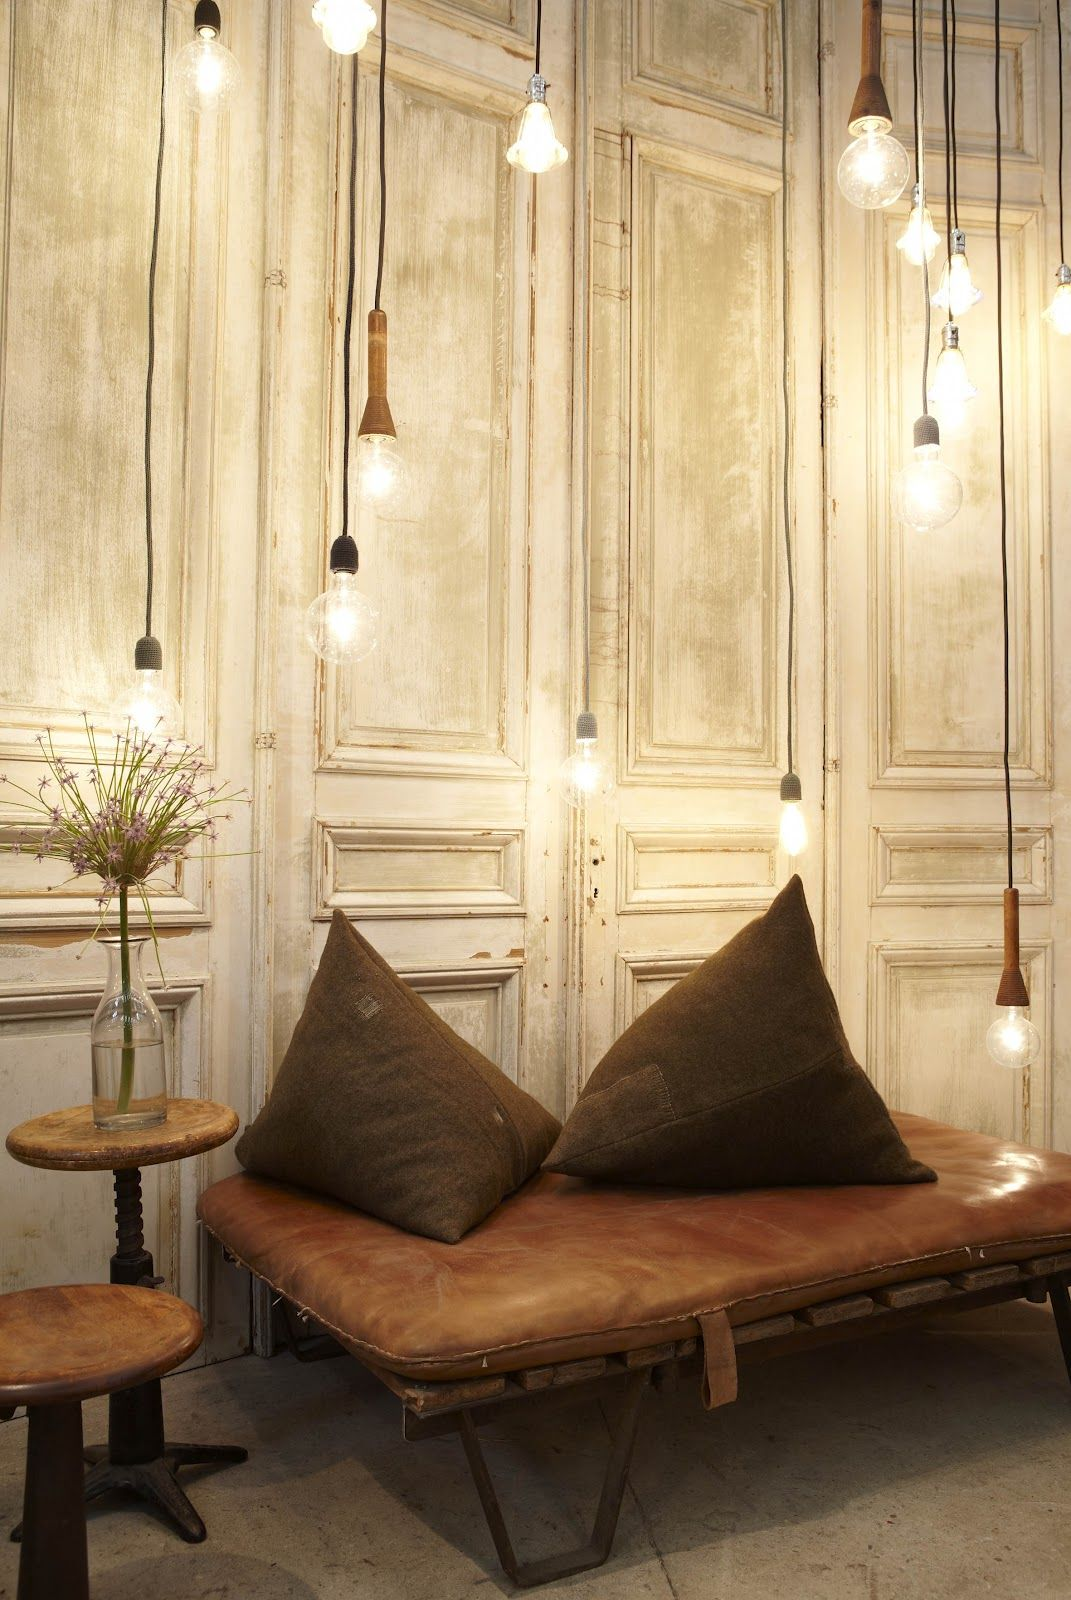 LE PRINTEMPS DE NORD-OUEST | Wood walls, Interior lighting and Interiors